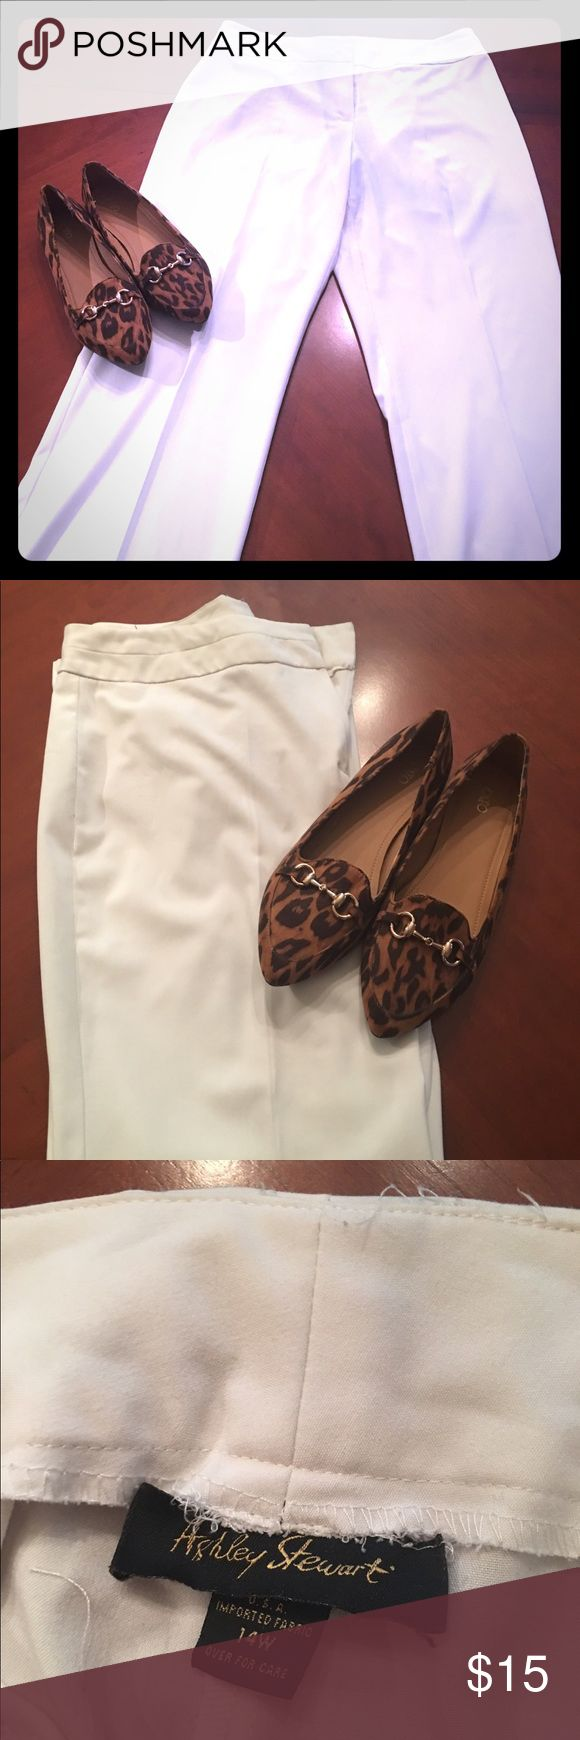 ‼️SALE💥Ashley Stewart Sz 14 Cream/White pants💥‼️ Cream pants size 14 woman's by Ashley Stewart. Good condition, Has small stain along trim of both legs because was a tad too long for me. Also has some pilling in the seat but still a great pair of pants. Ashley Stewart Pants